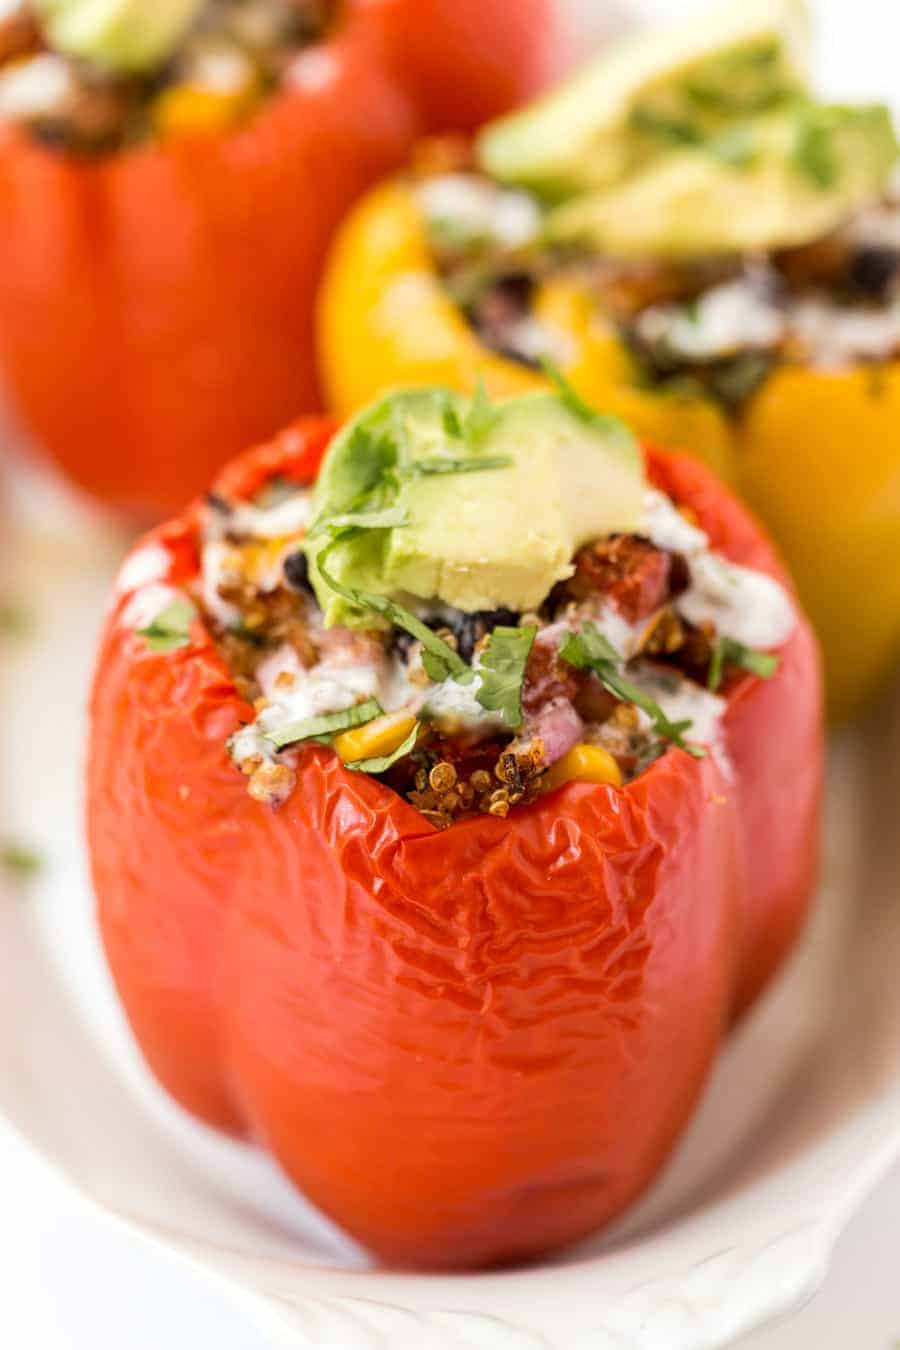 A quinoa stuffed pepper rests on a white plate.